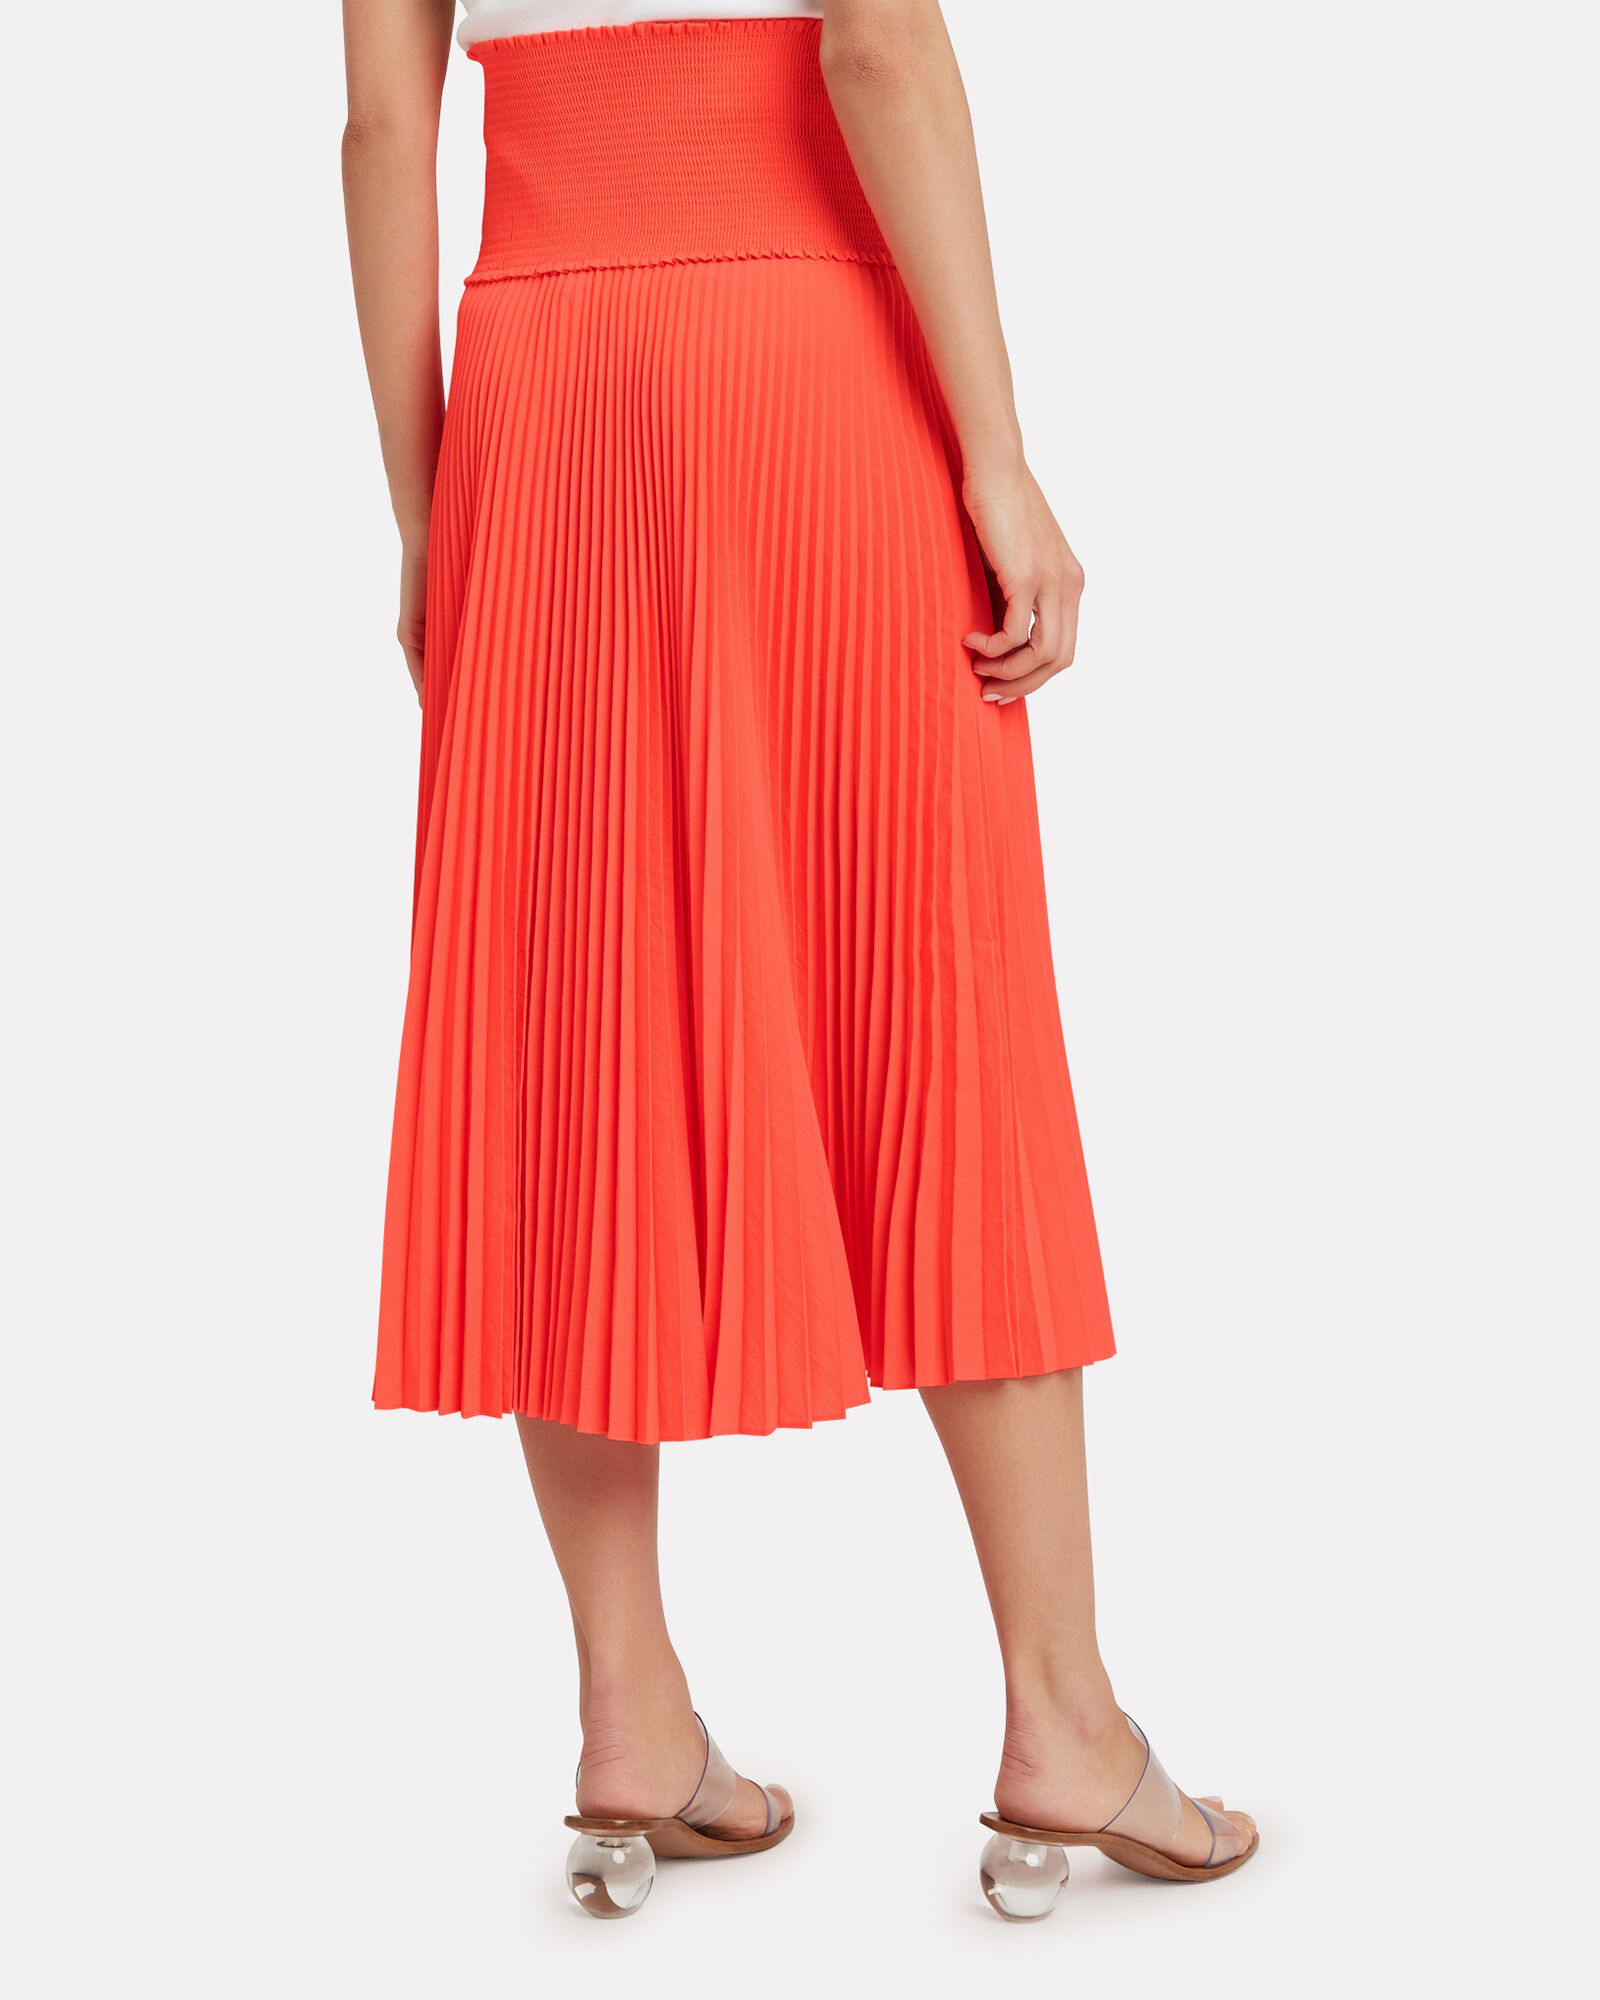 Hendrin Pleated Skirt, ORANGE, hi-res